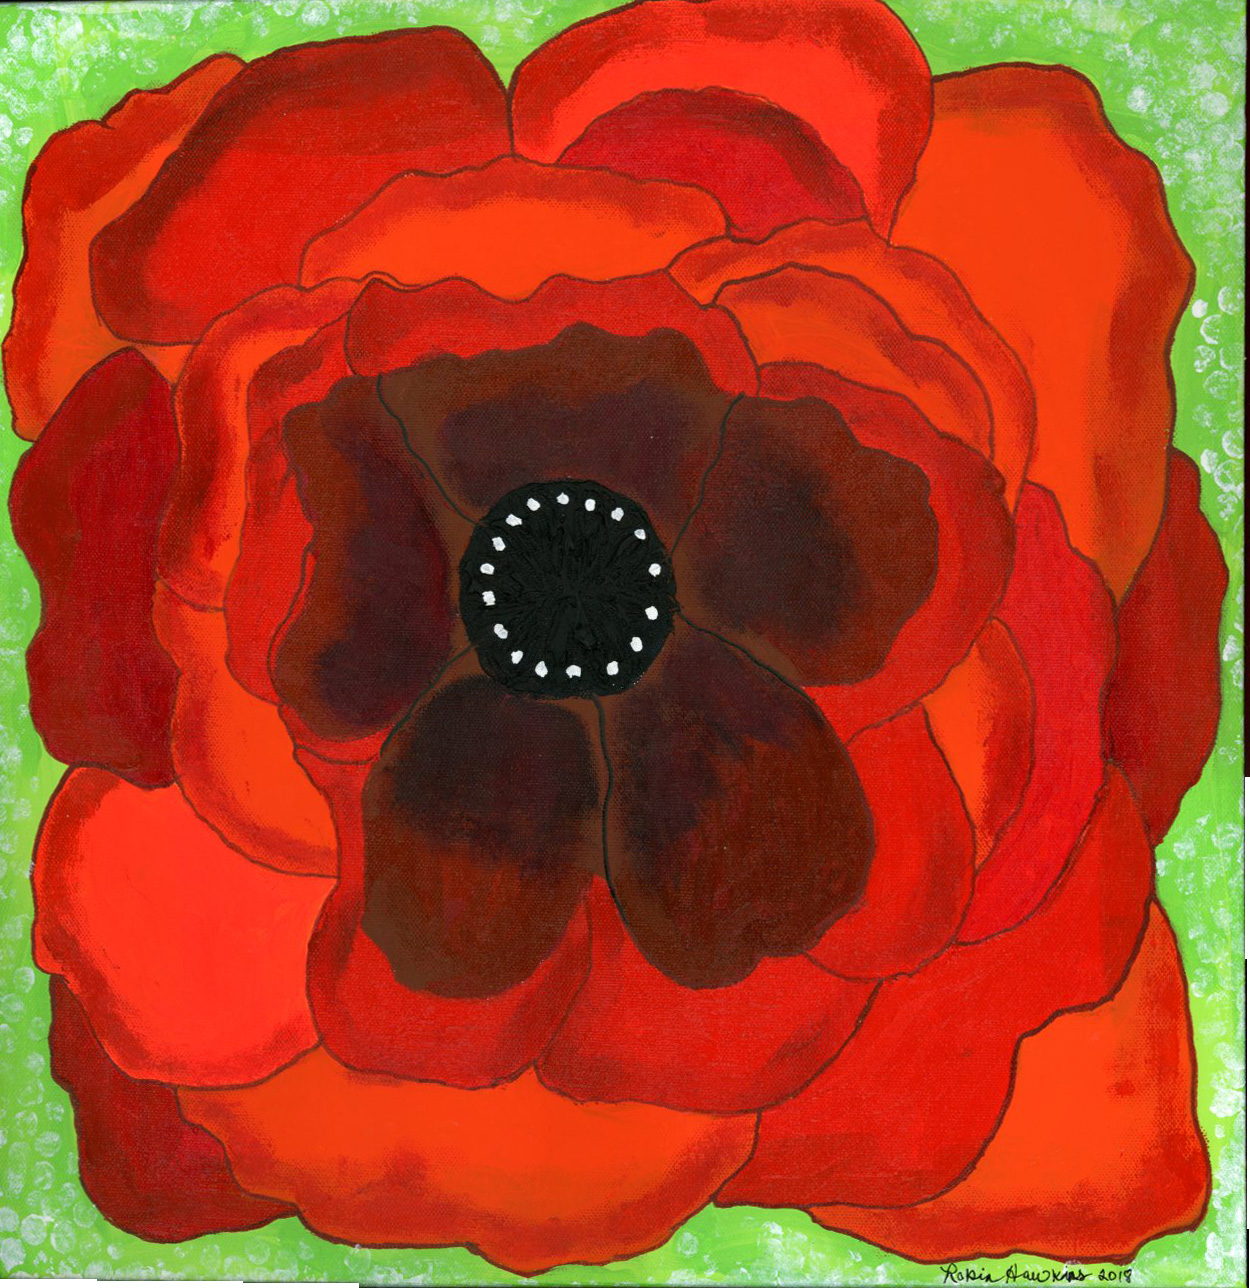 One very bold poppy on a grass green background.